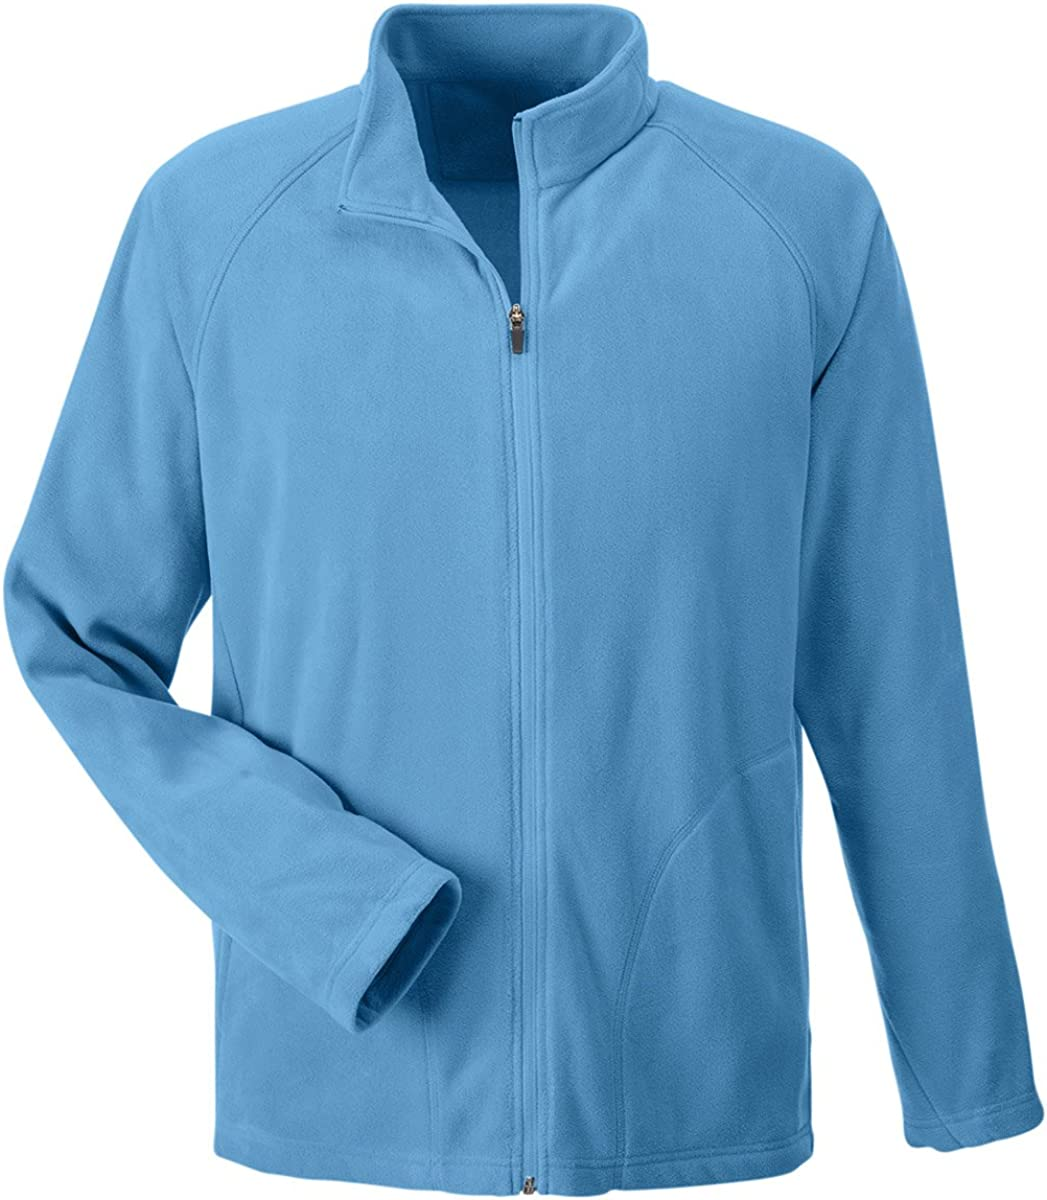 TEAM 365 Men's Omaha Mall Jacket Directly managed store Microfleece Campus